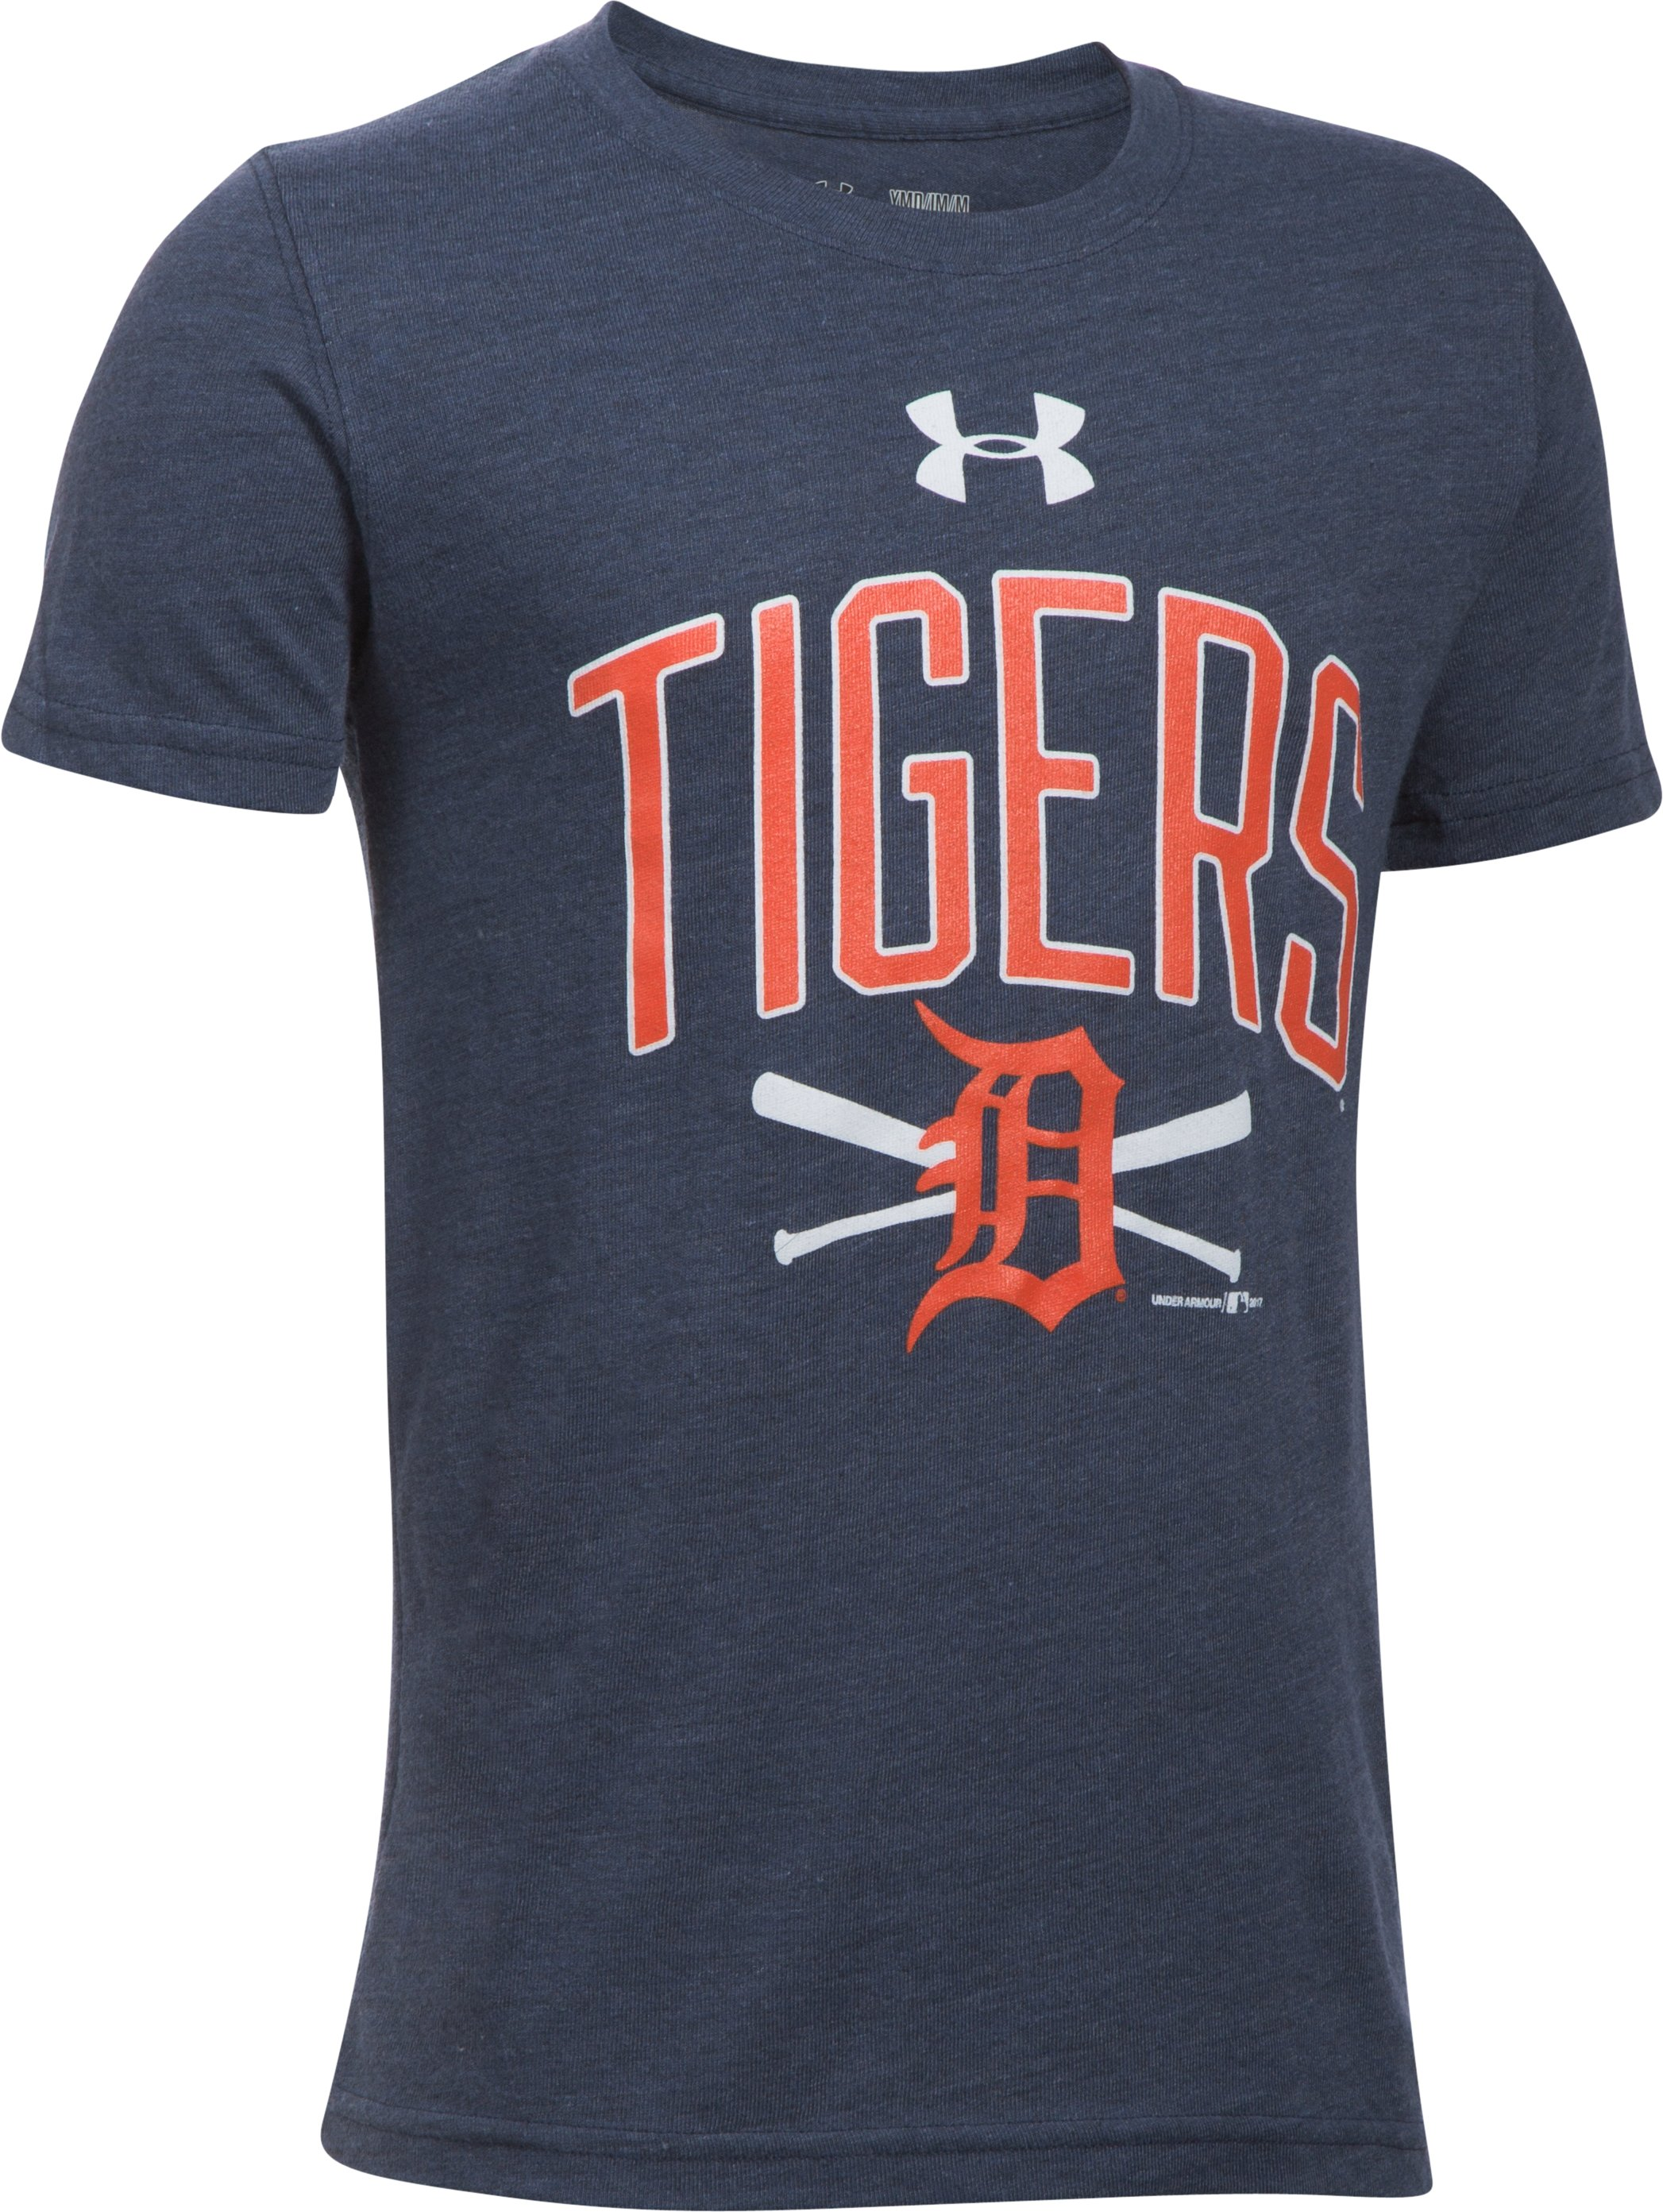 Boys' Detroit Tigers Tri-Blend T-Shirt, Midnight Navy